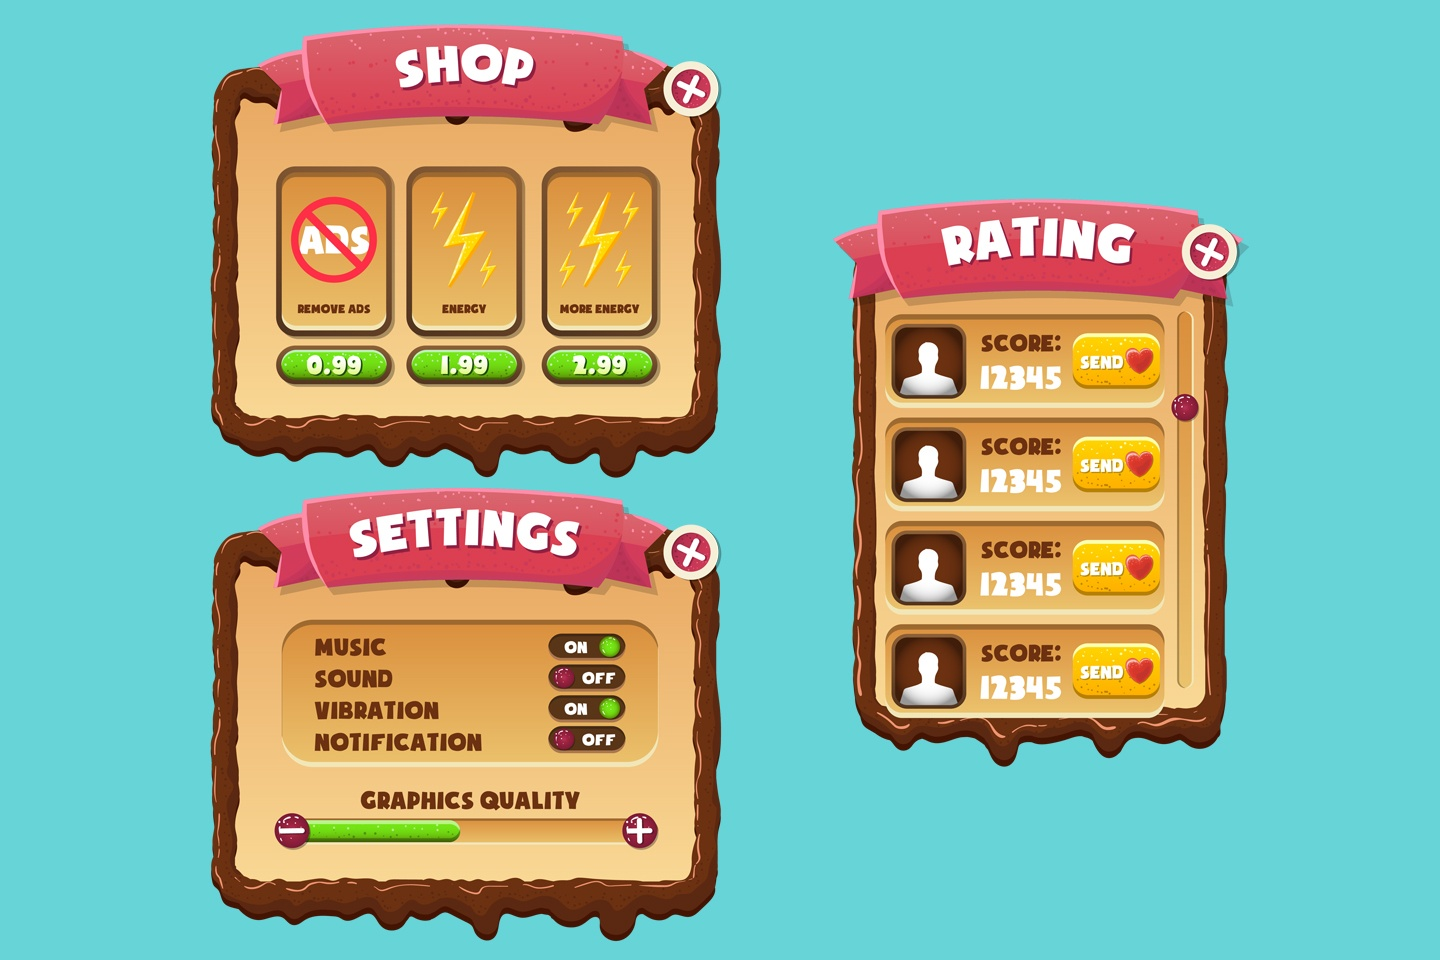 Matching Games - Play Matching Games on Free Online Games